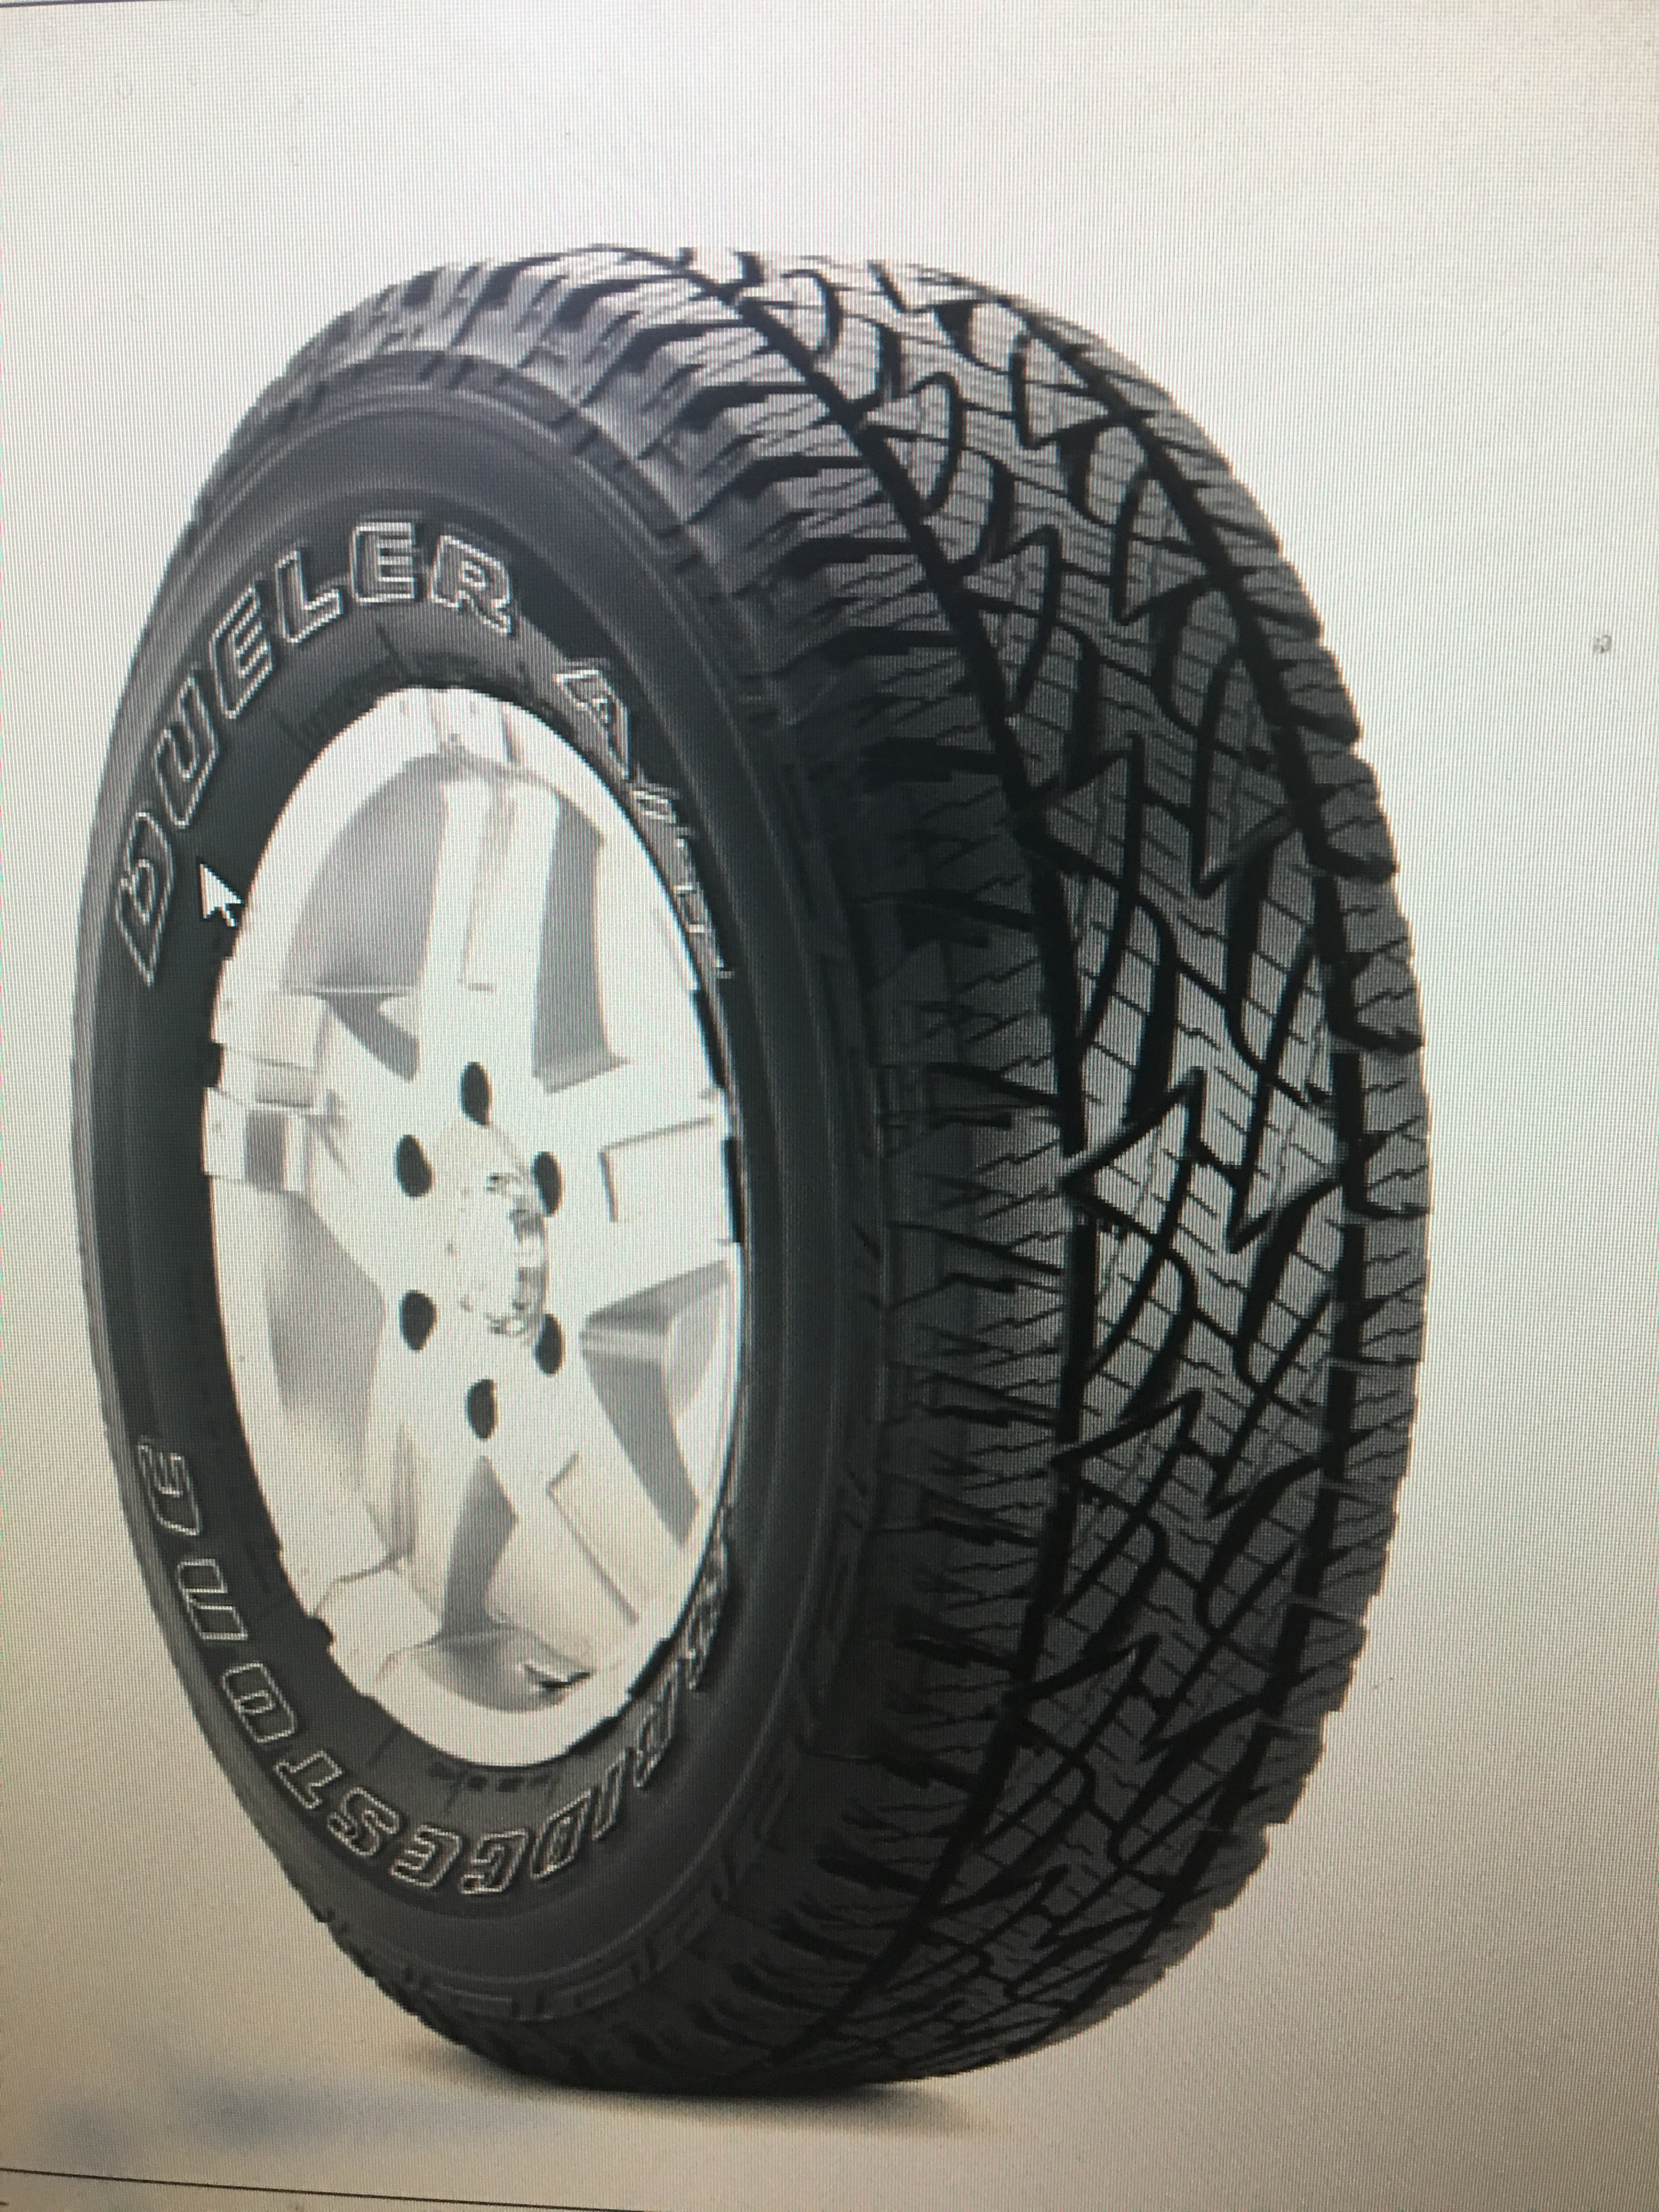 Mr Tire In 1801 S Chicago St Joliet IL Tire Dealers MapQuest